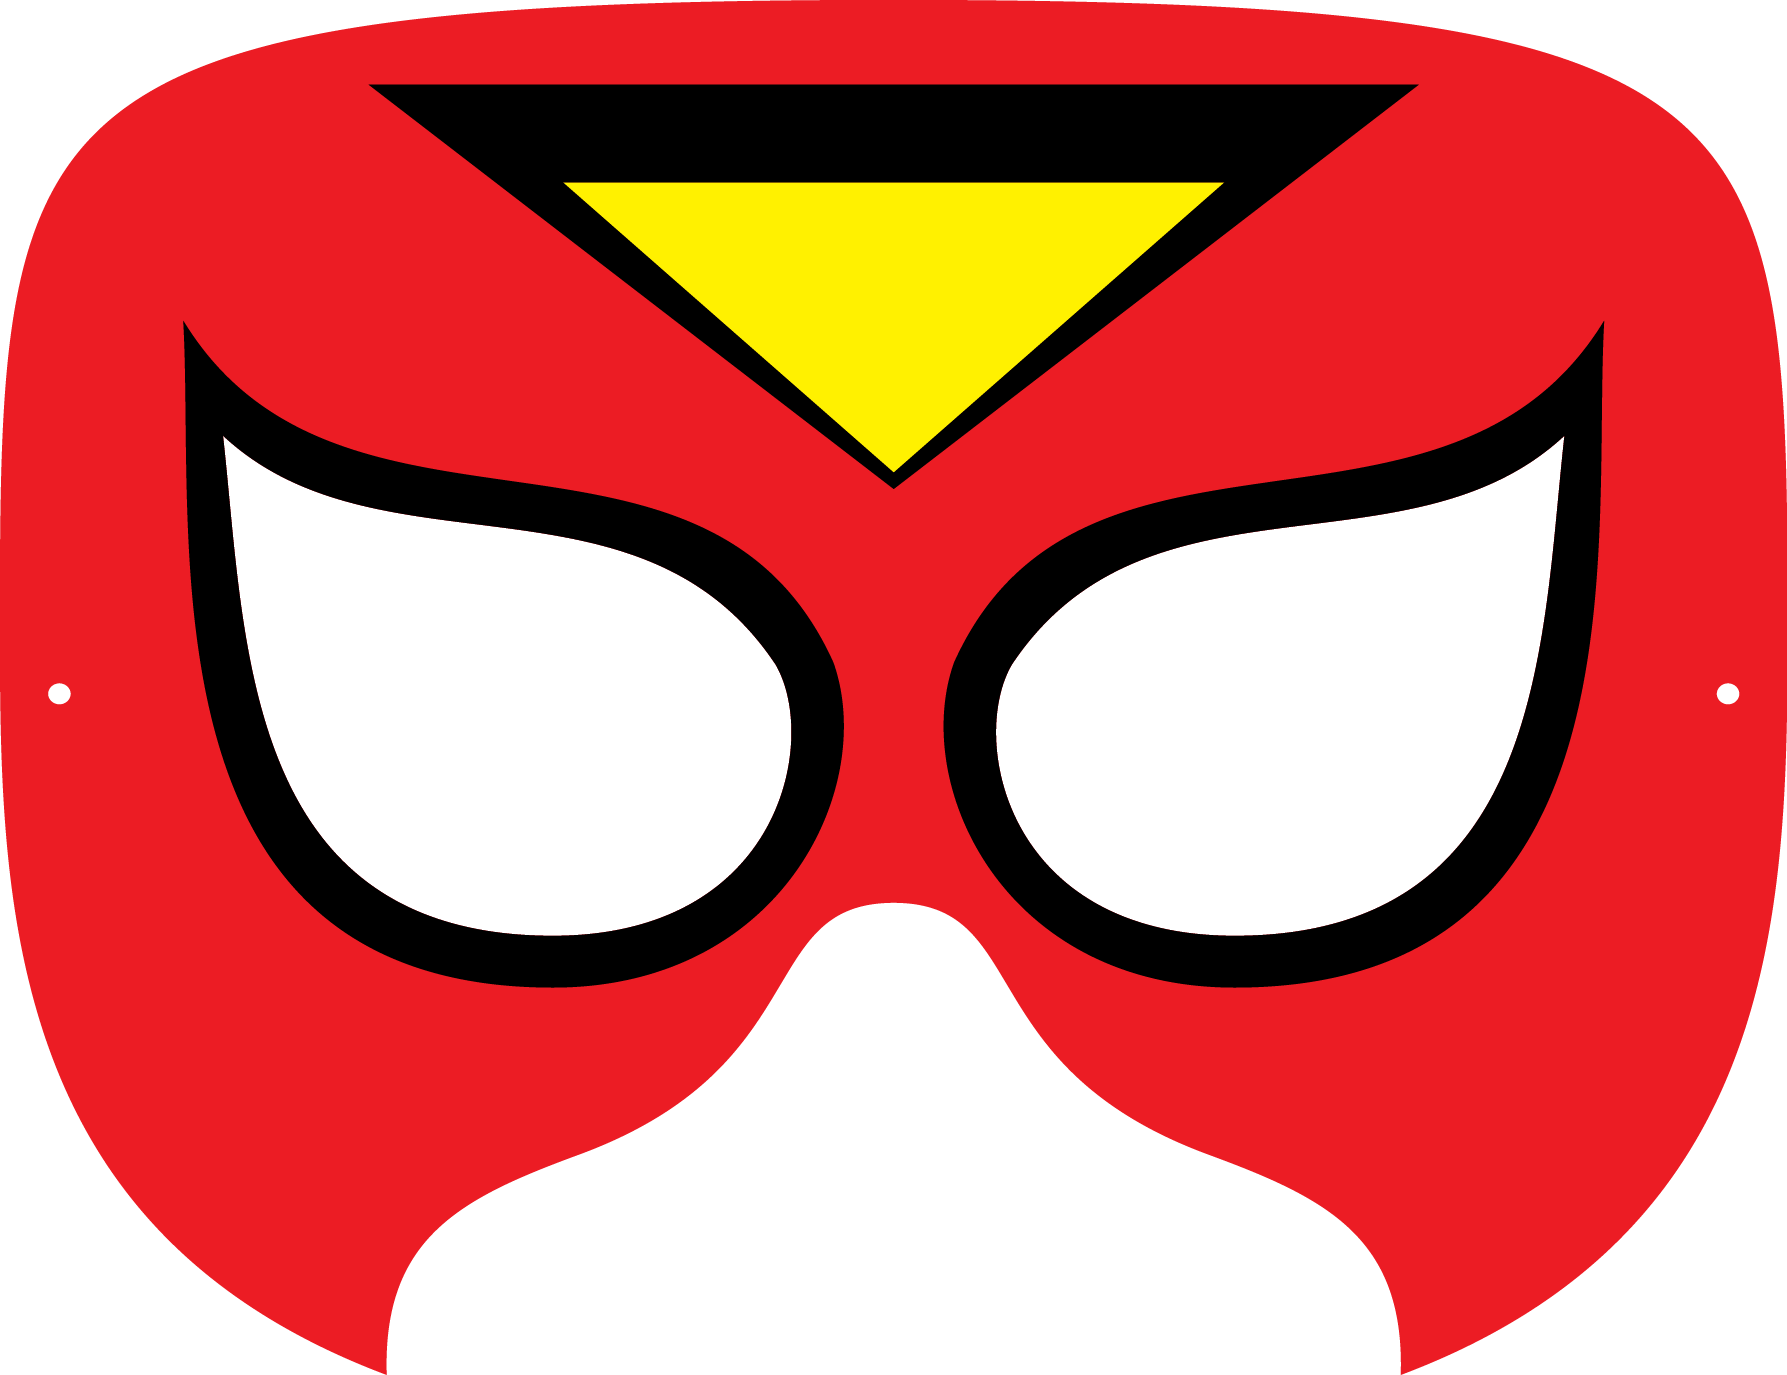 image regarding Superhero Printable Mask identified as Superhero Mask Template Absolutely free obtain ideal Superhero Mask